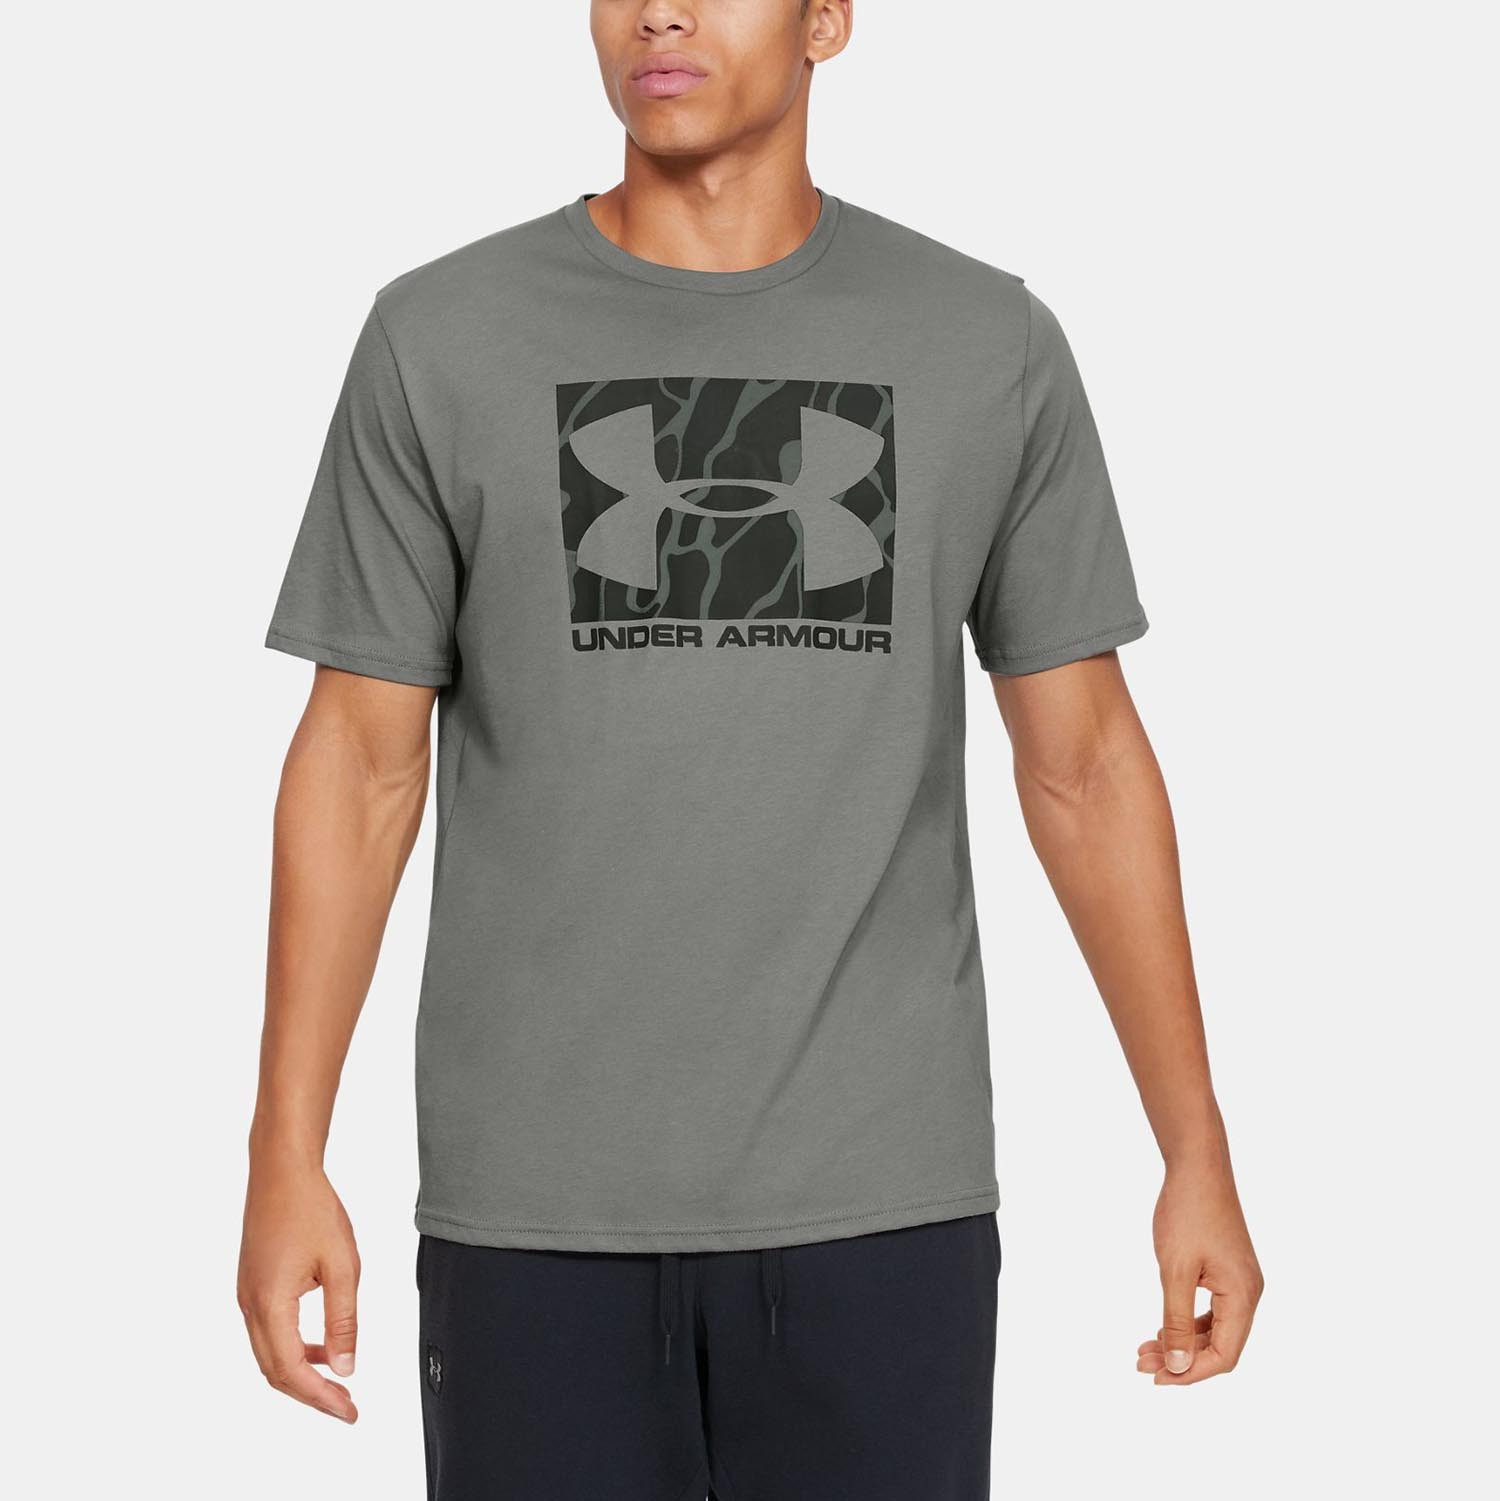 Under Armour Camo Boxed Men's T-Shirt (9000047980_44263)